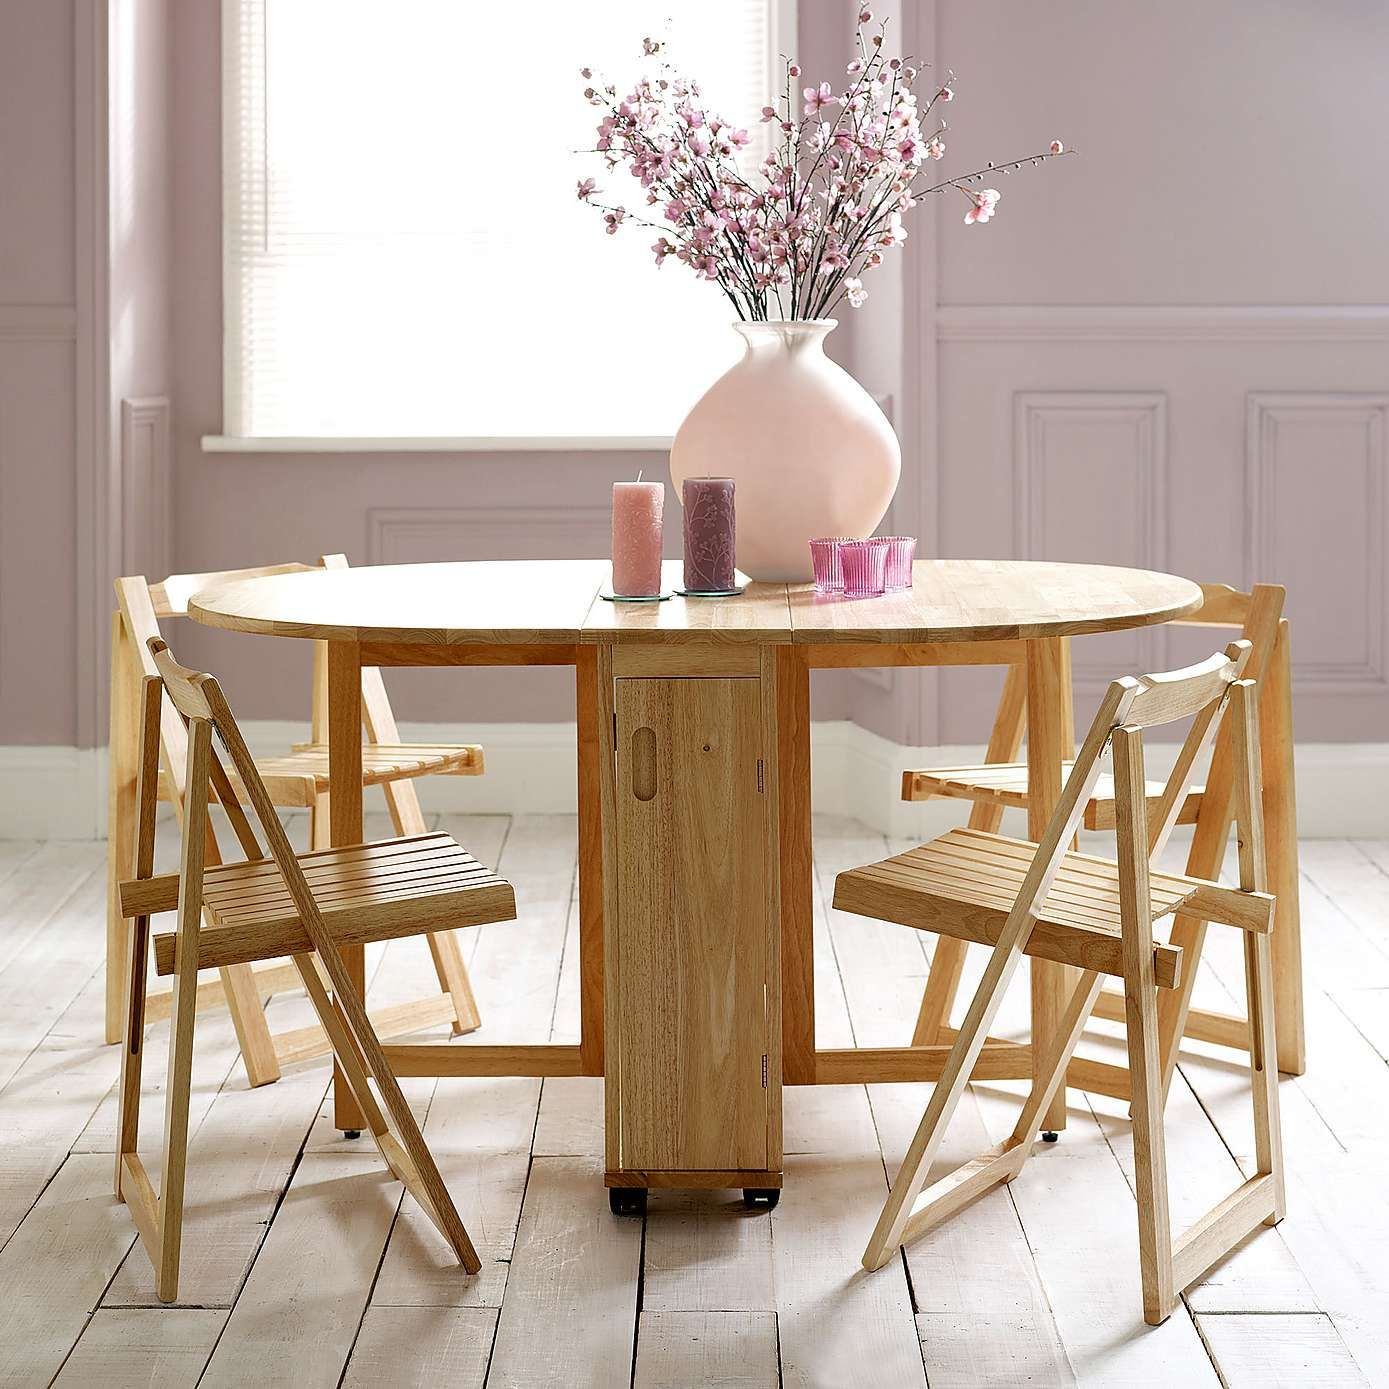 Rubberwood Butterfly Table With 4 Chairs Dunelm Small Table